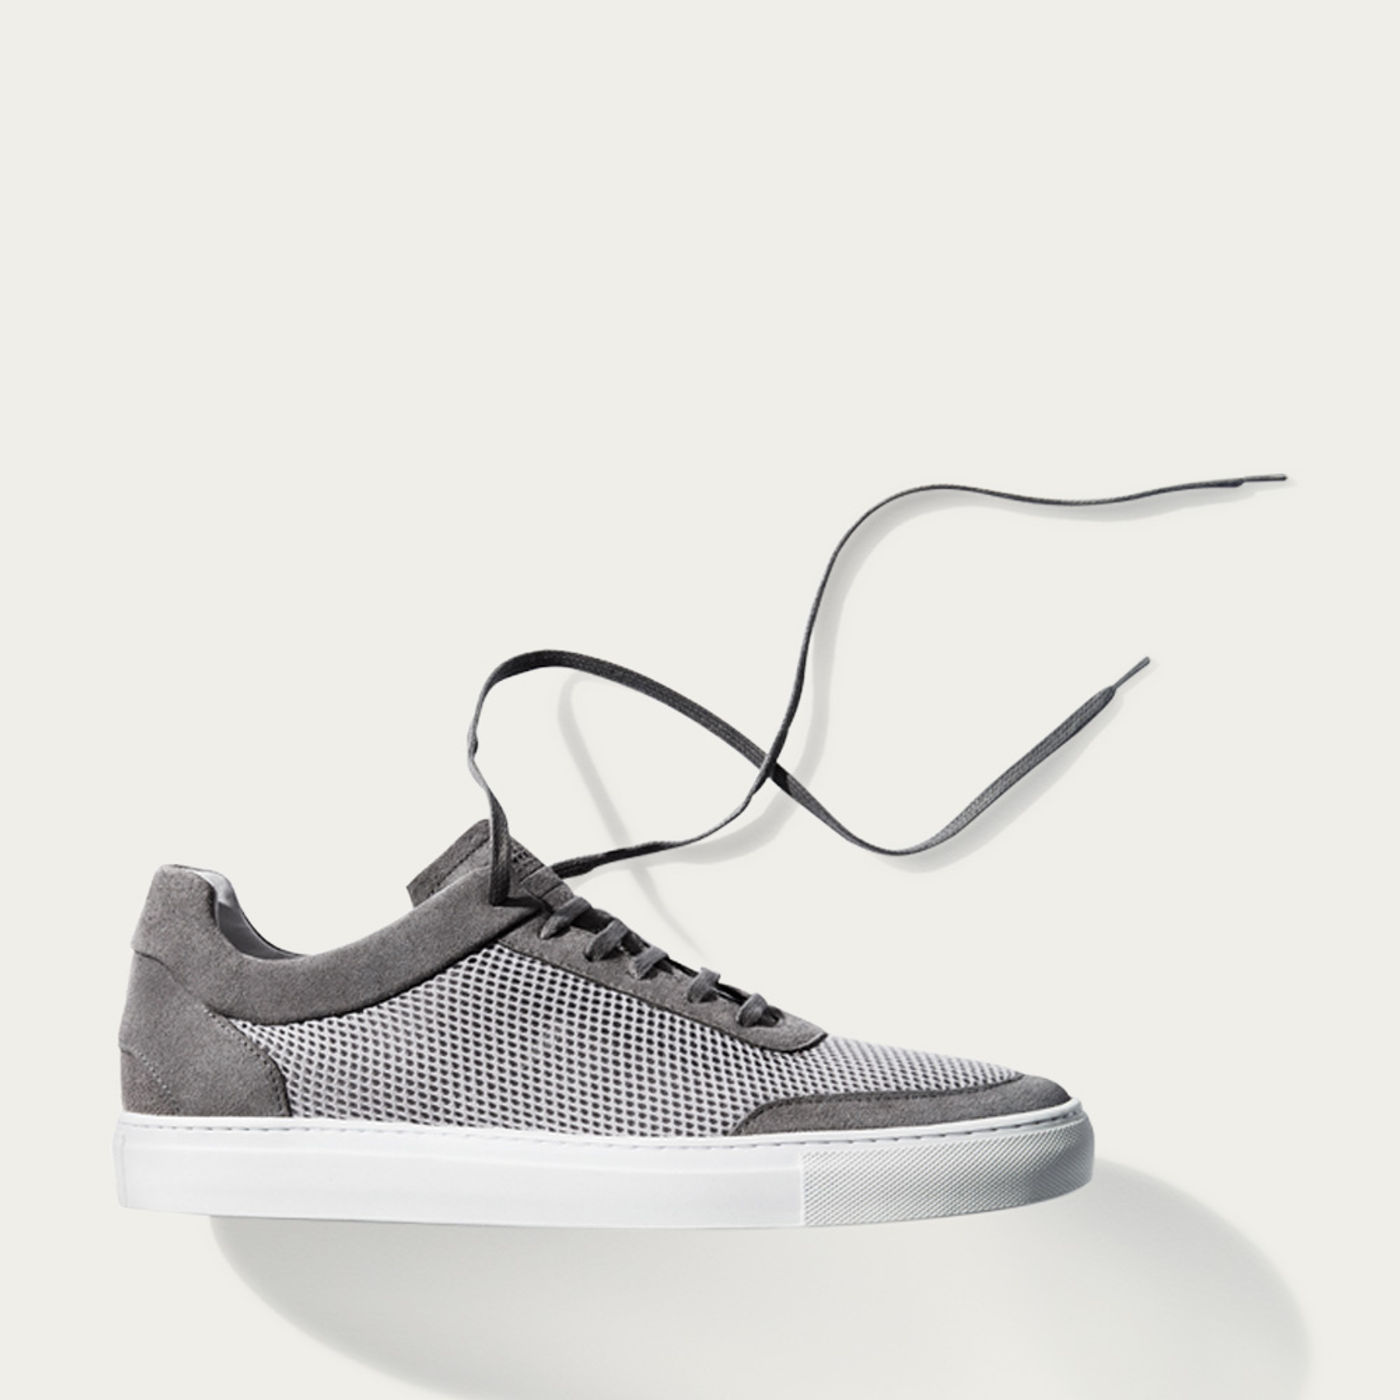 No-2 Cement Sneakers   Bombinate